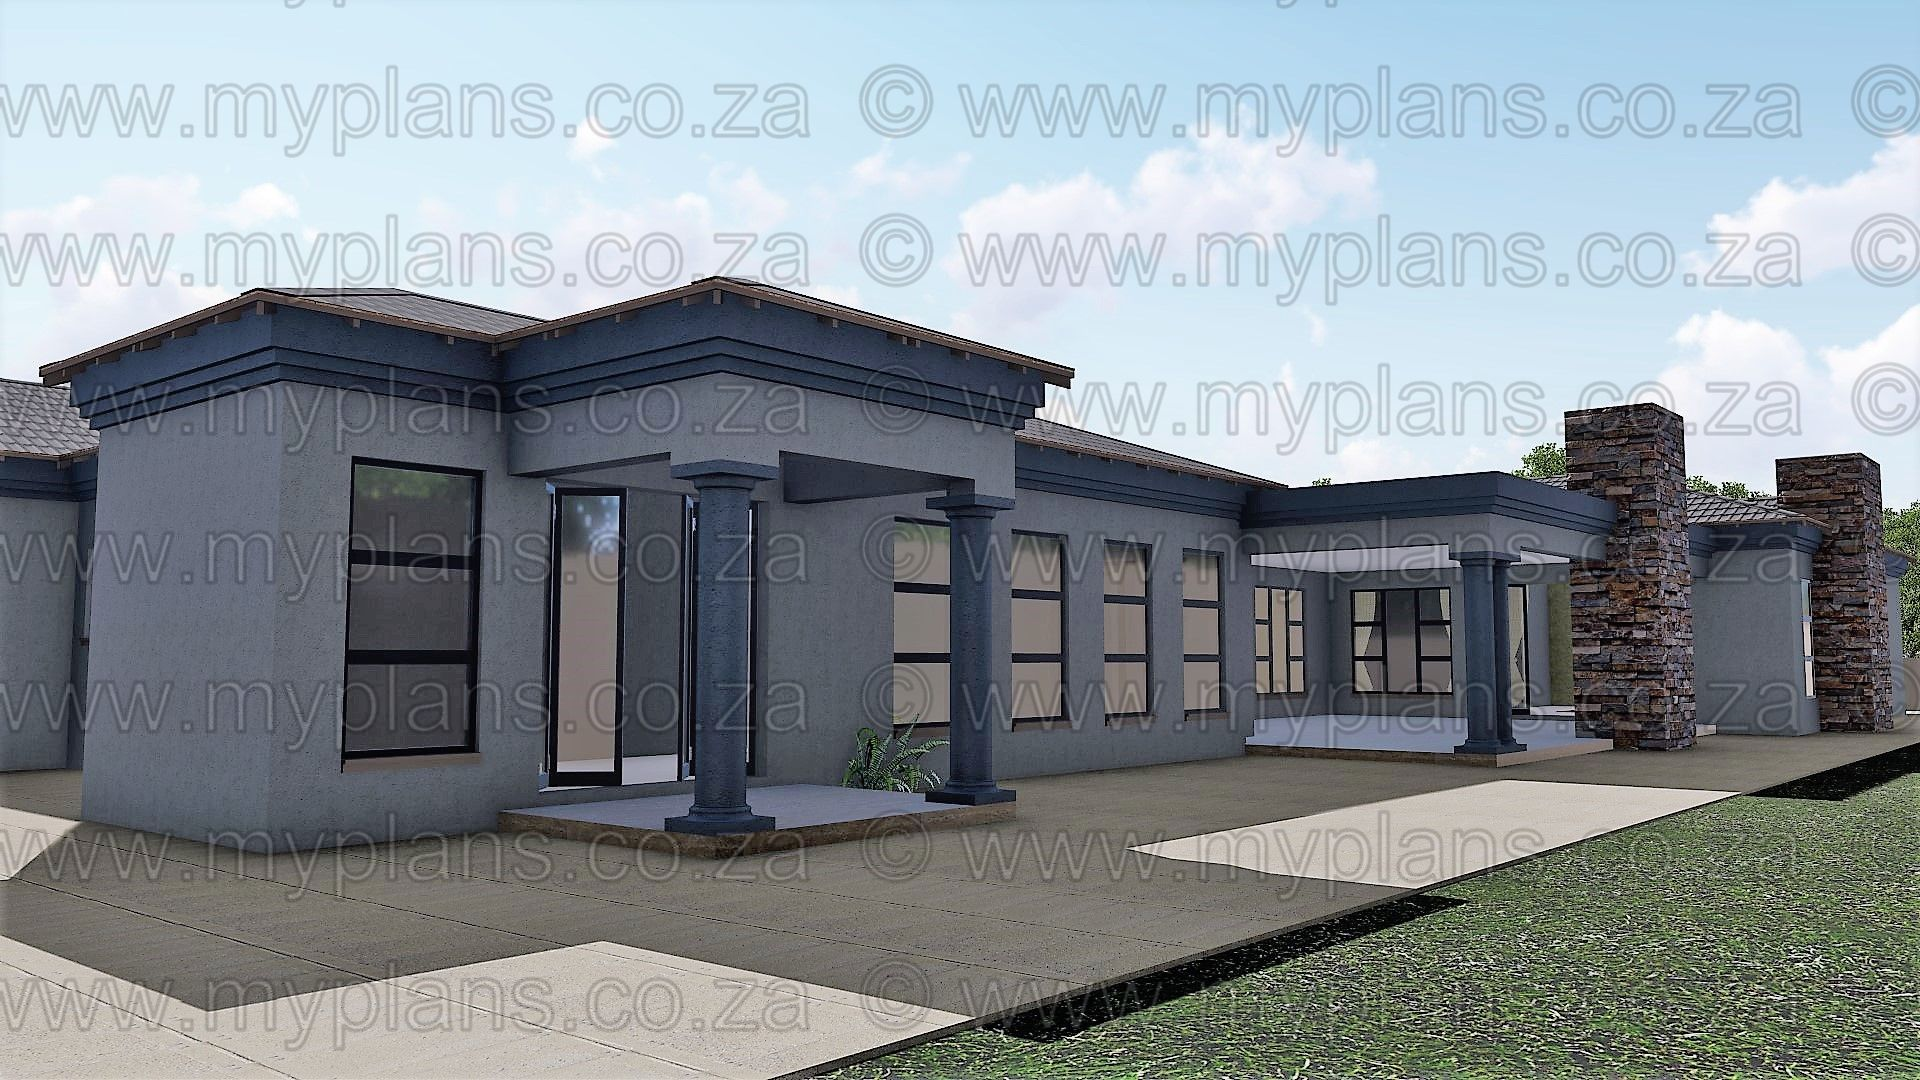 4 Bedroom House Plan MLB-058.1S (With images) | 4 bedroom ...